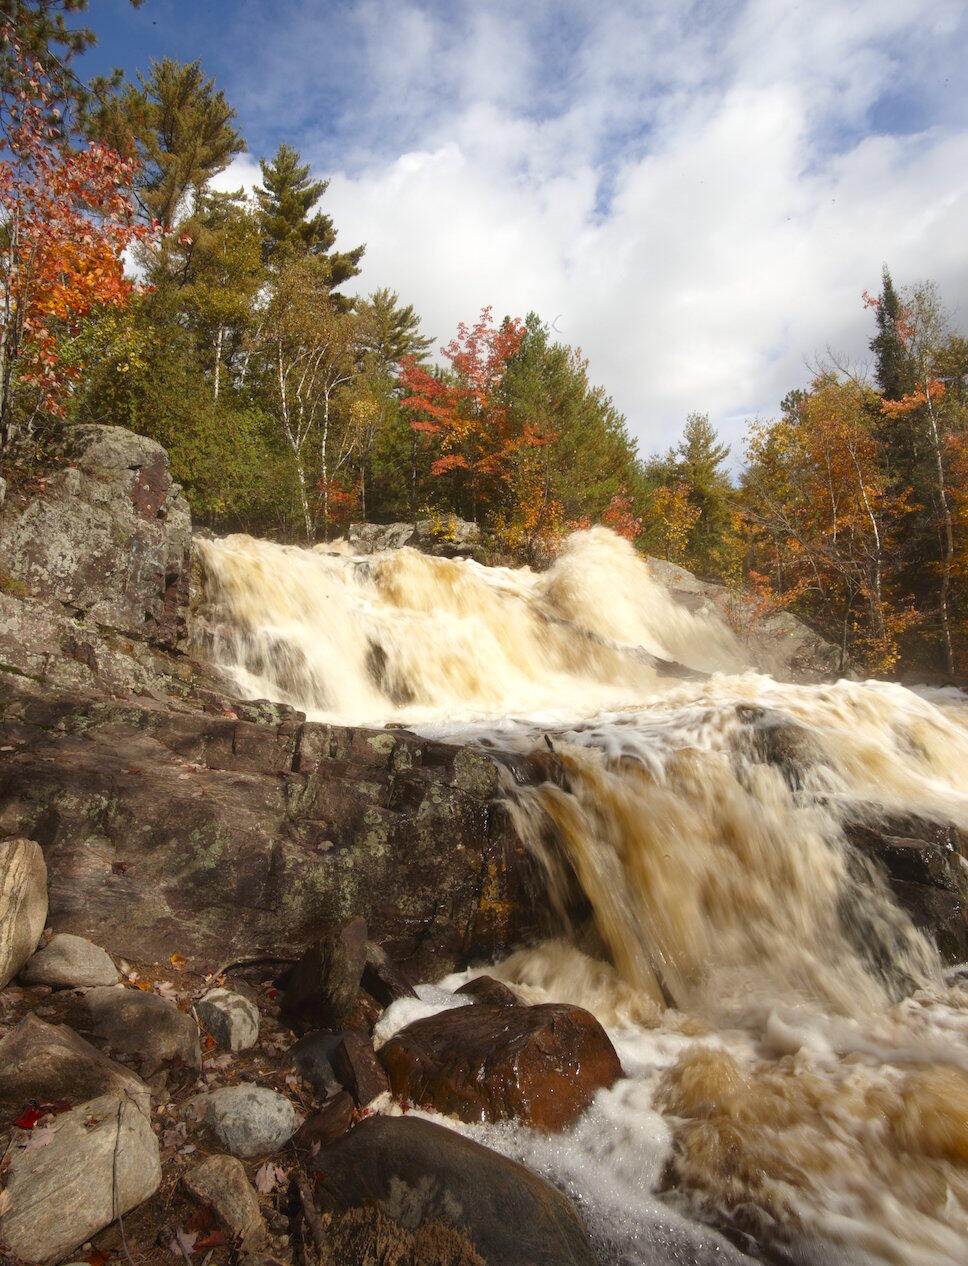 Large waterfalls flowing over rocks in autumn